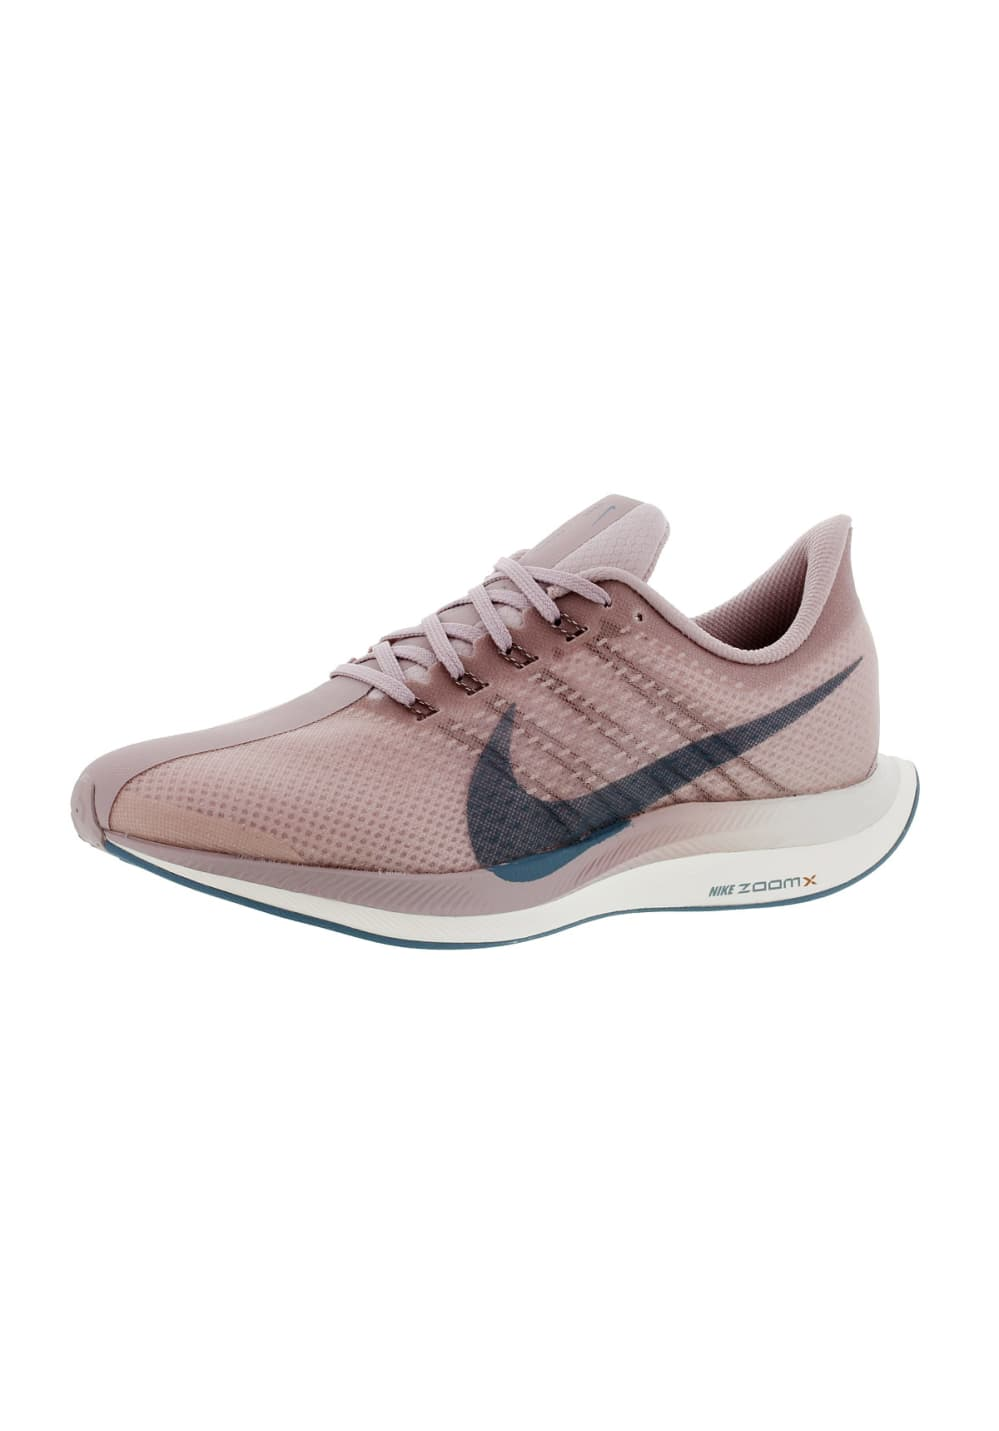 Turbo Running Zoom Pegasus Nike Pour Femme Rose Chaussures tCshQrd